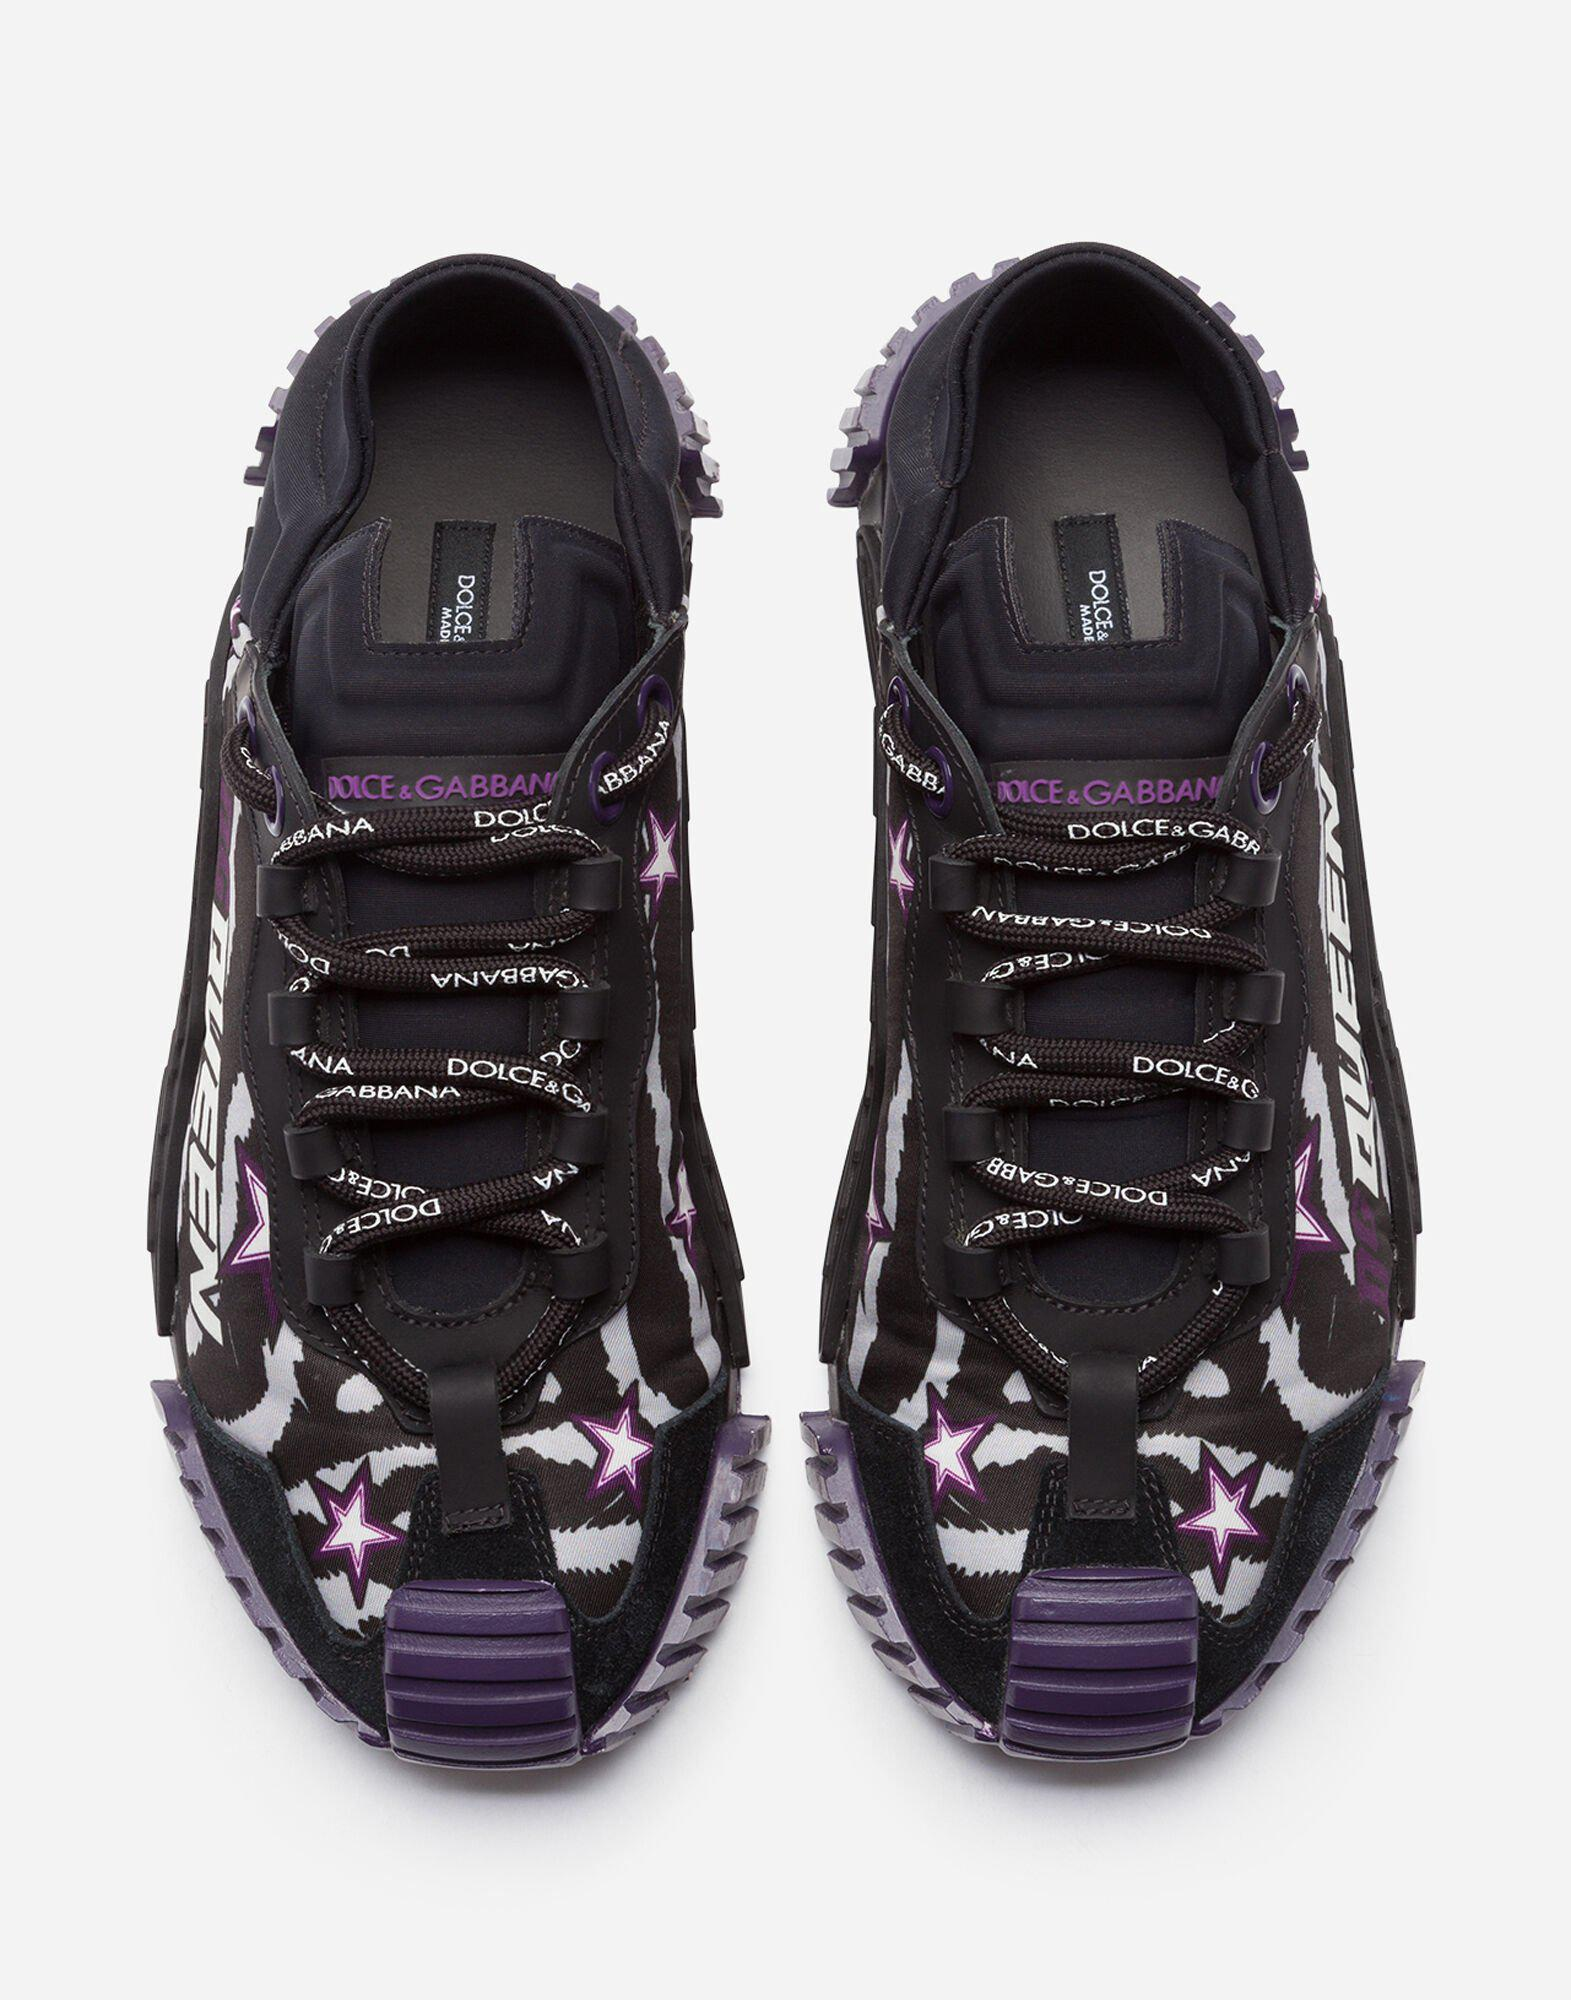 Slip-on NS1 sneakers in mixed materials with jungle print and purple bottom 3